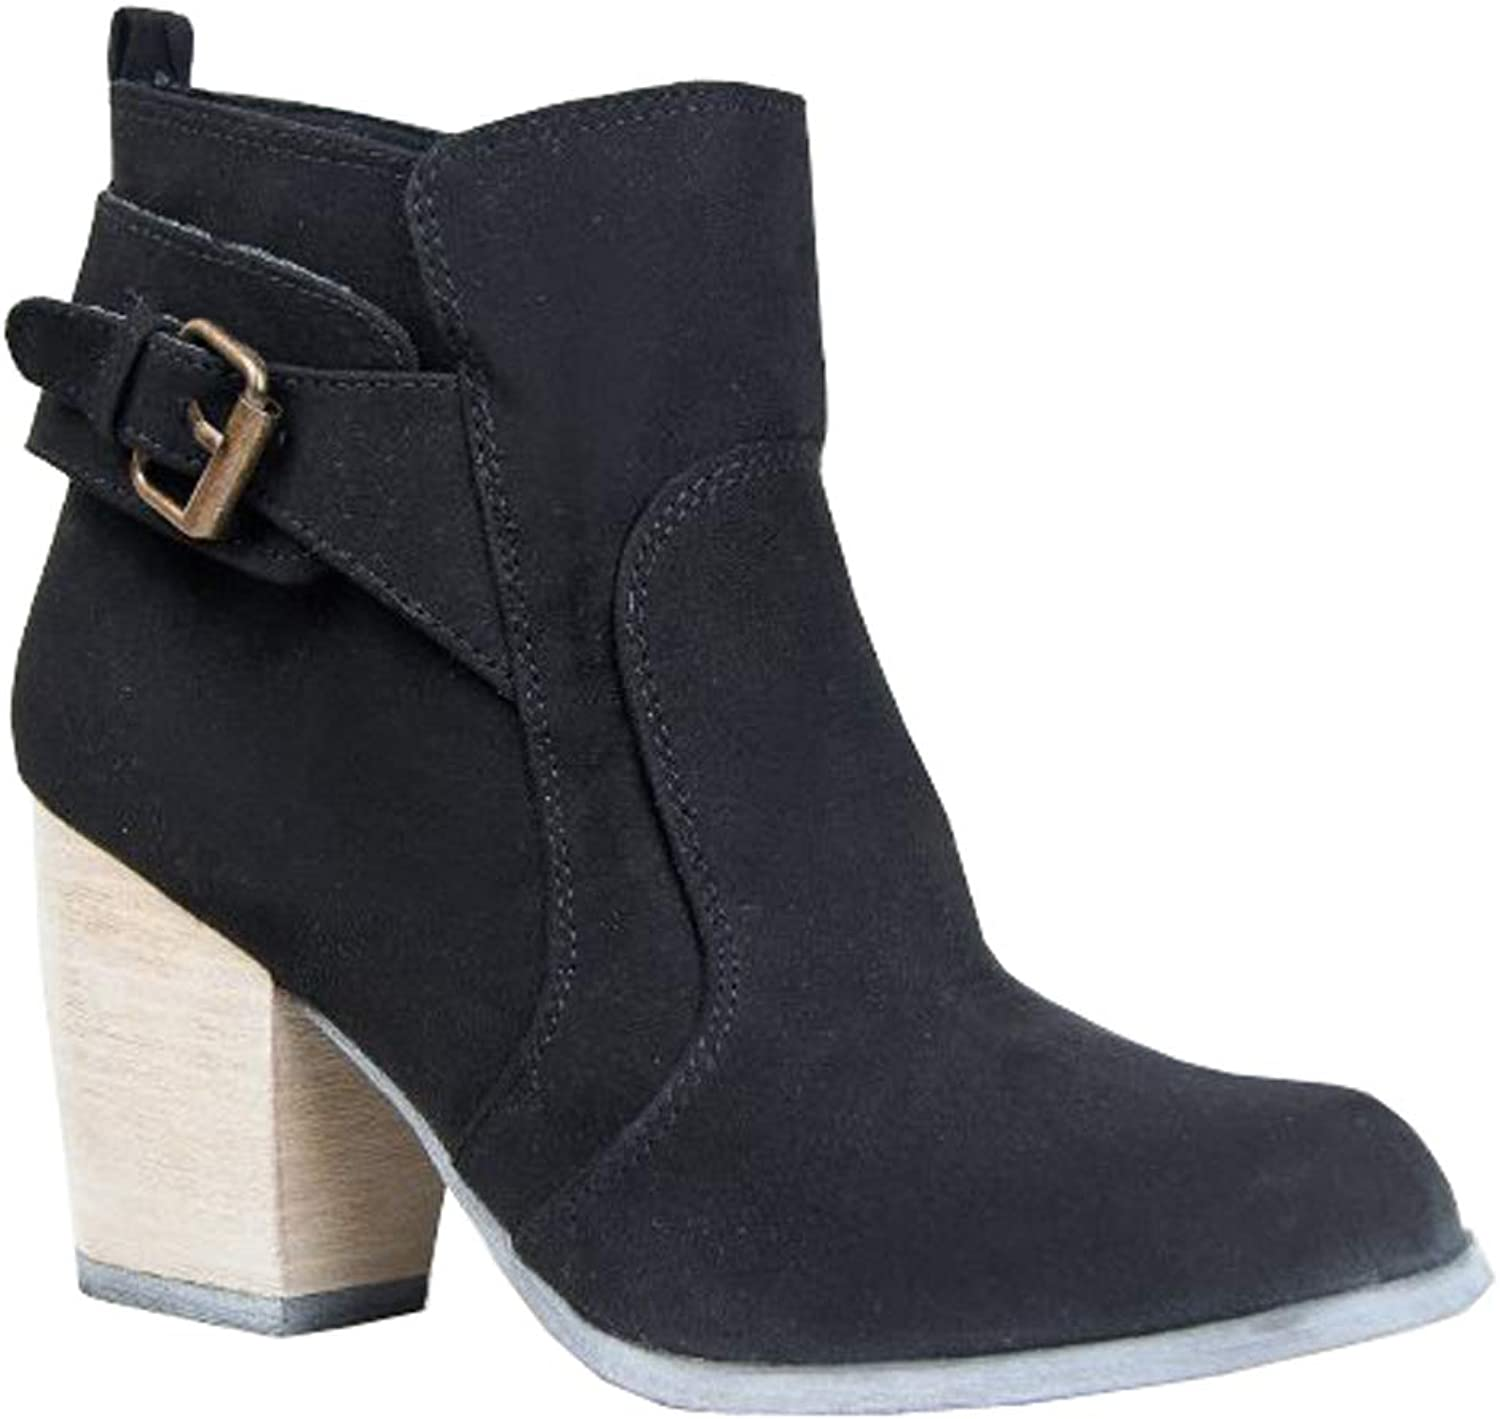 Qupid Maze-09 Buckle Detailed Western Cowboy Inspired Stacked Heel Ankle Boot.